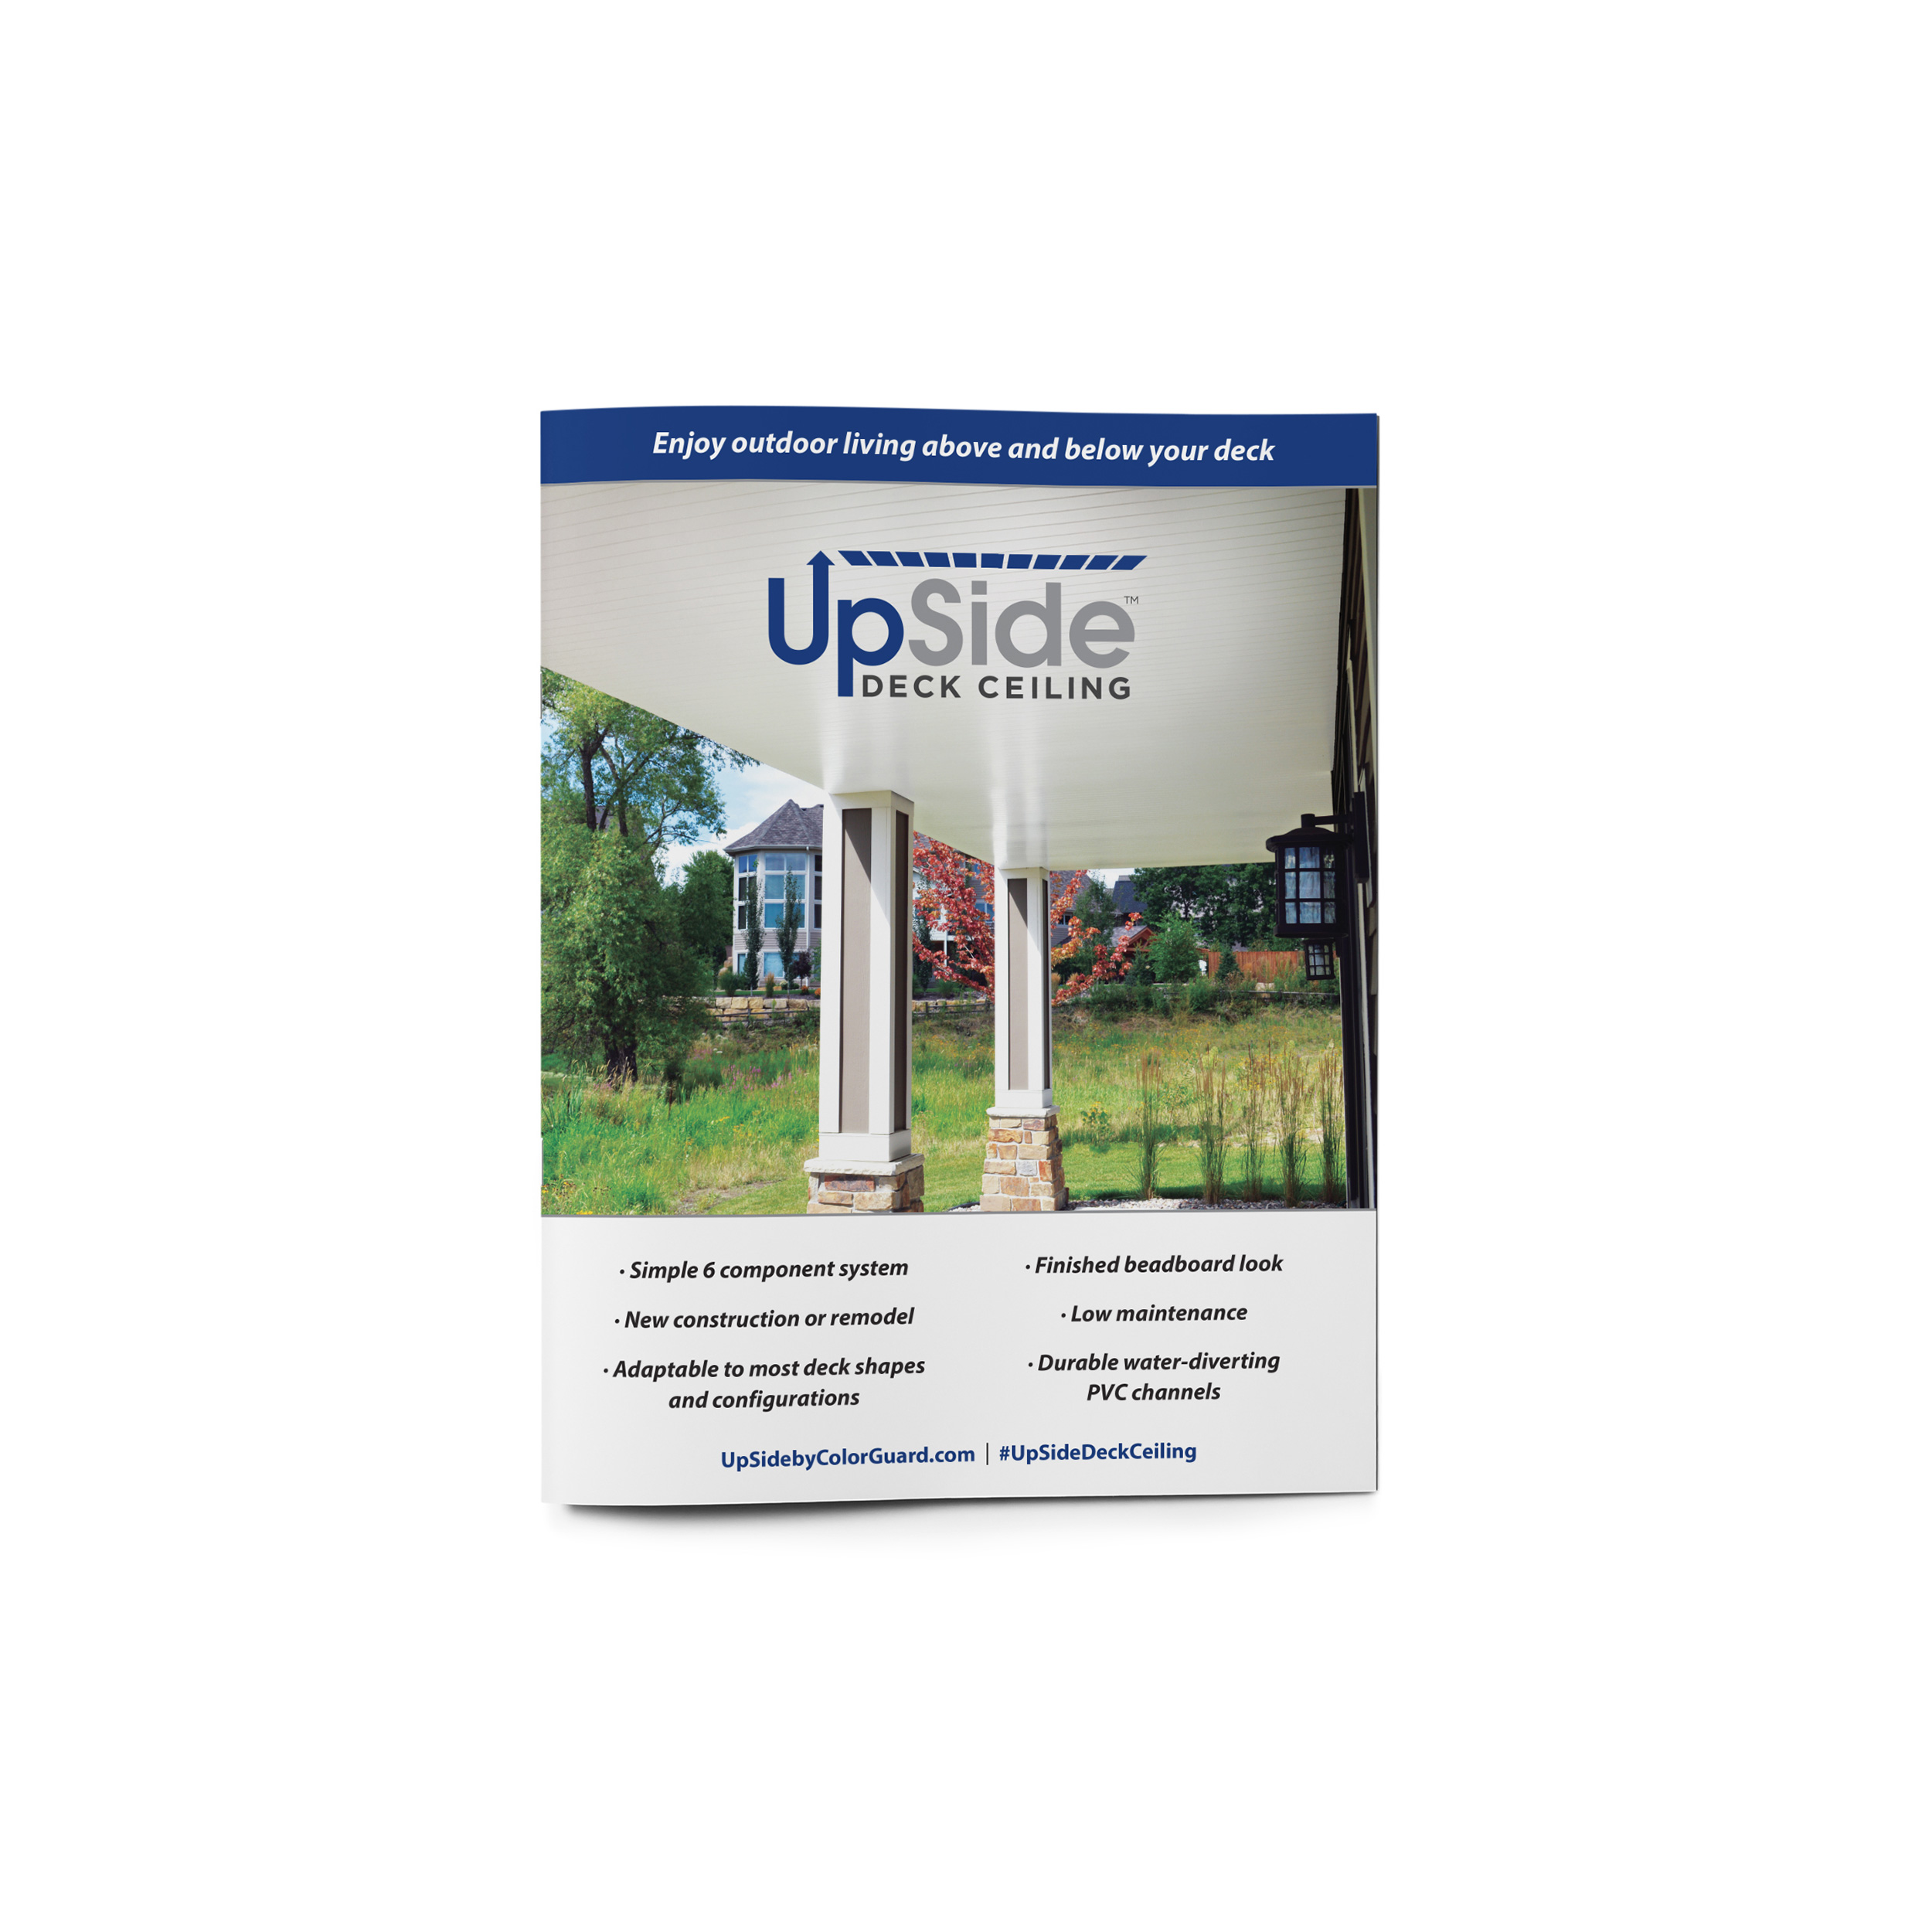 upside_collateral_brochure-front.jpg